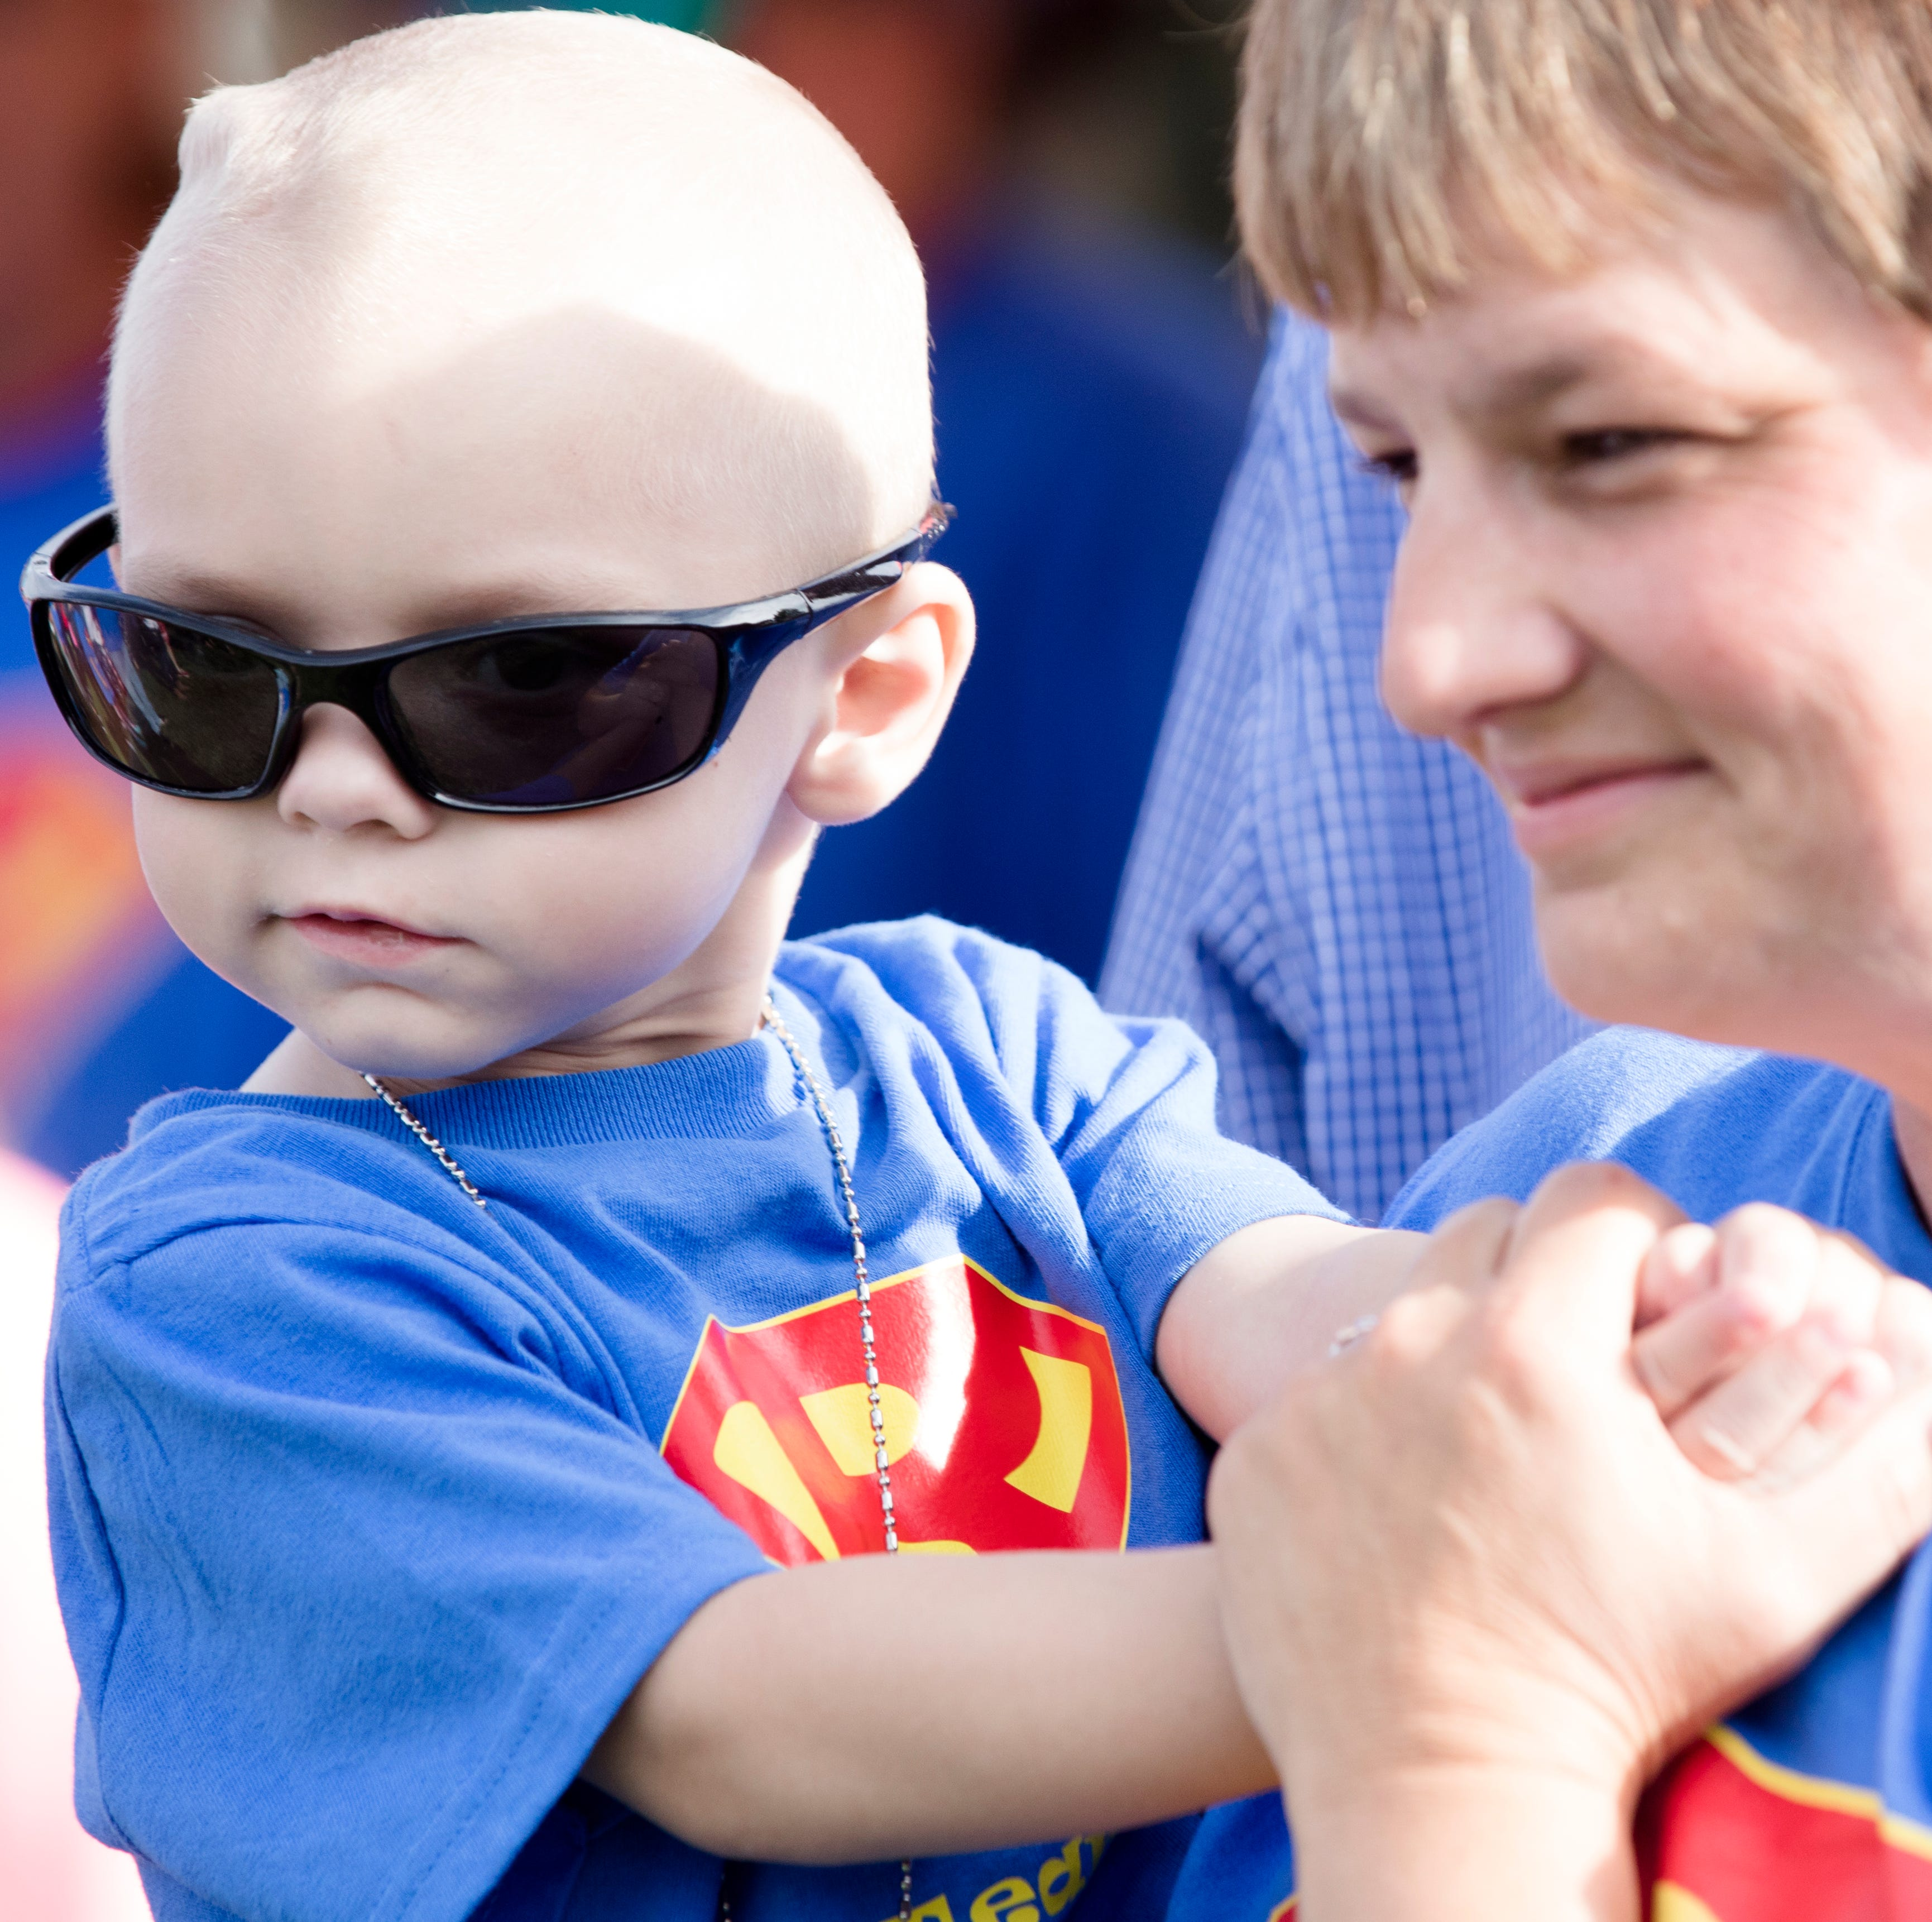 Brody Allen dies: 'Today heaven welcomed home our little super hero'